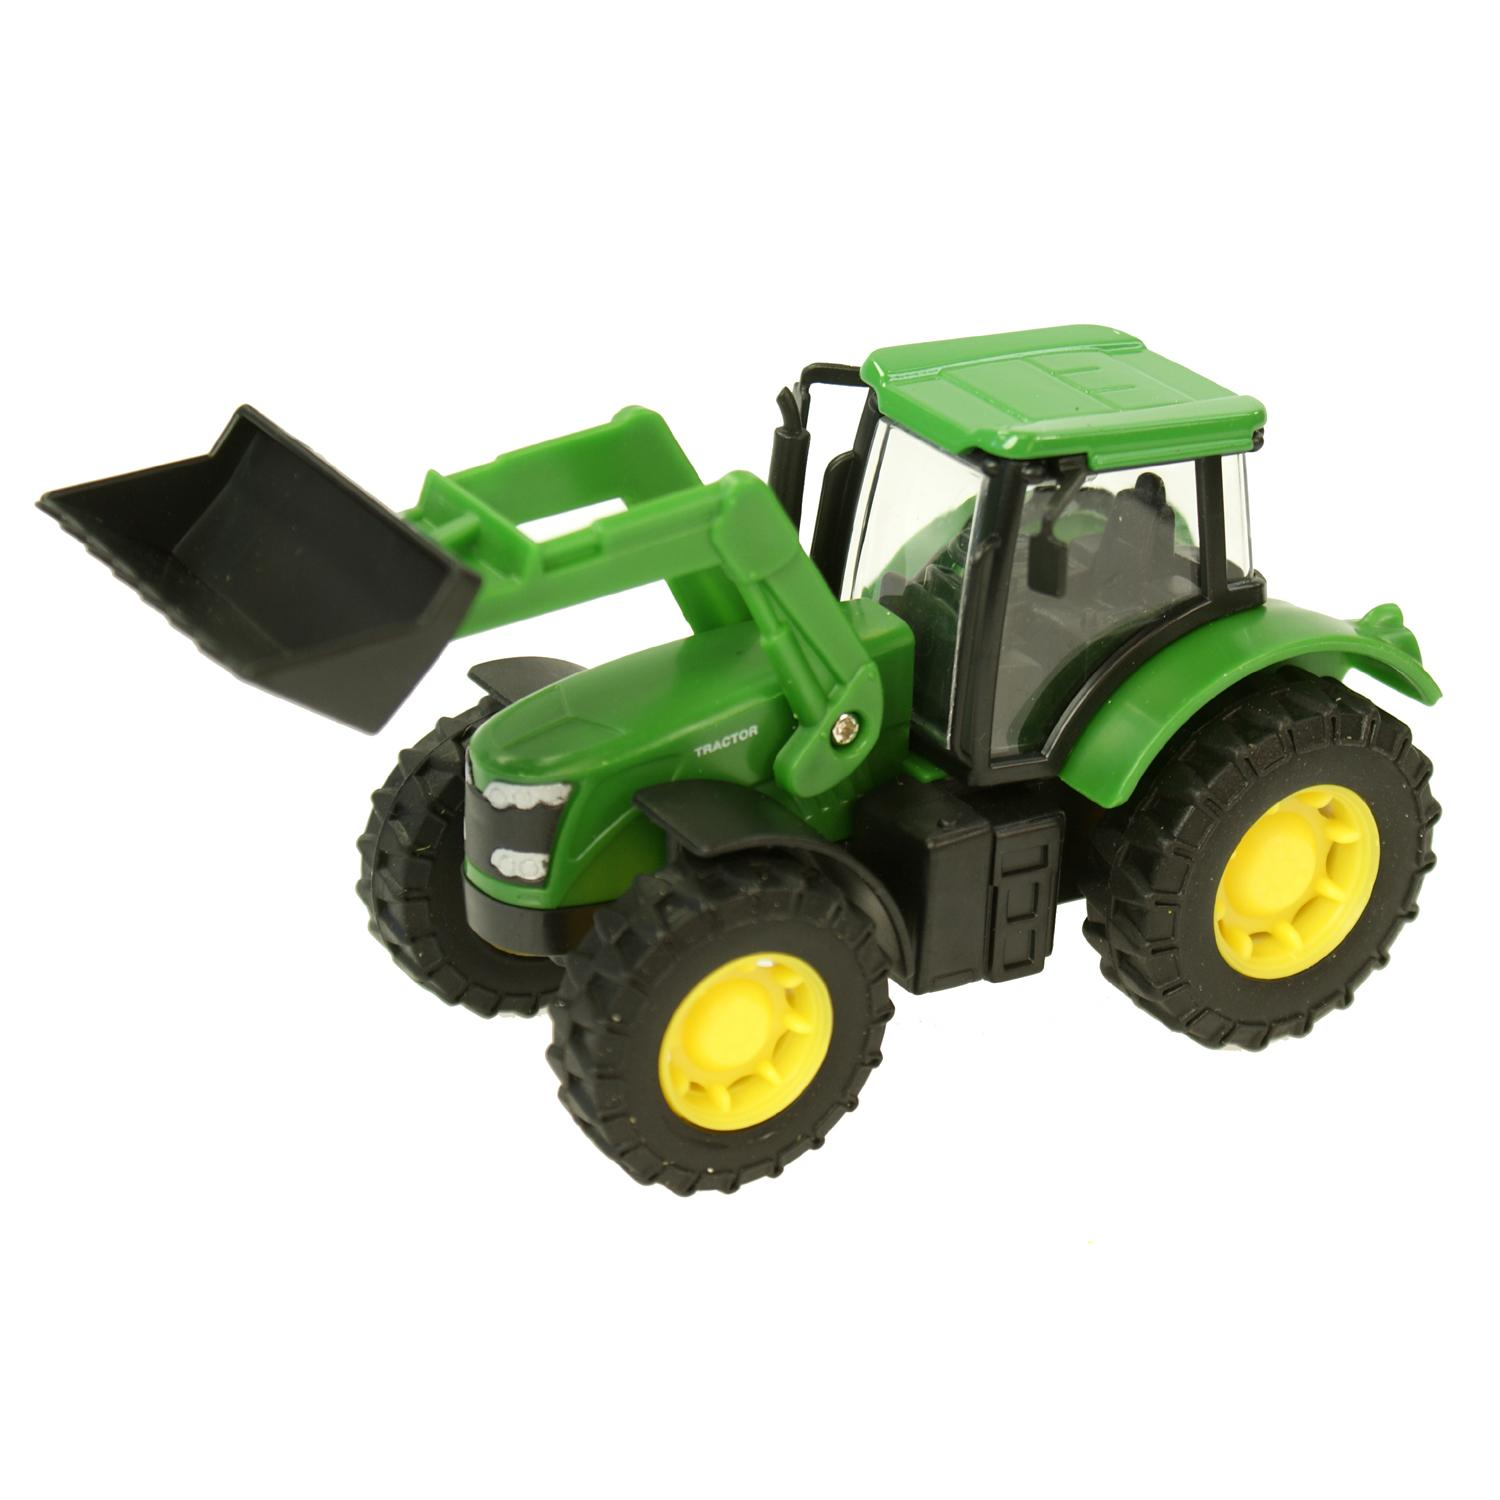 Digging Toys For Boys : Childrens boys farm tractor digger push along farming